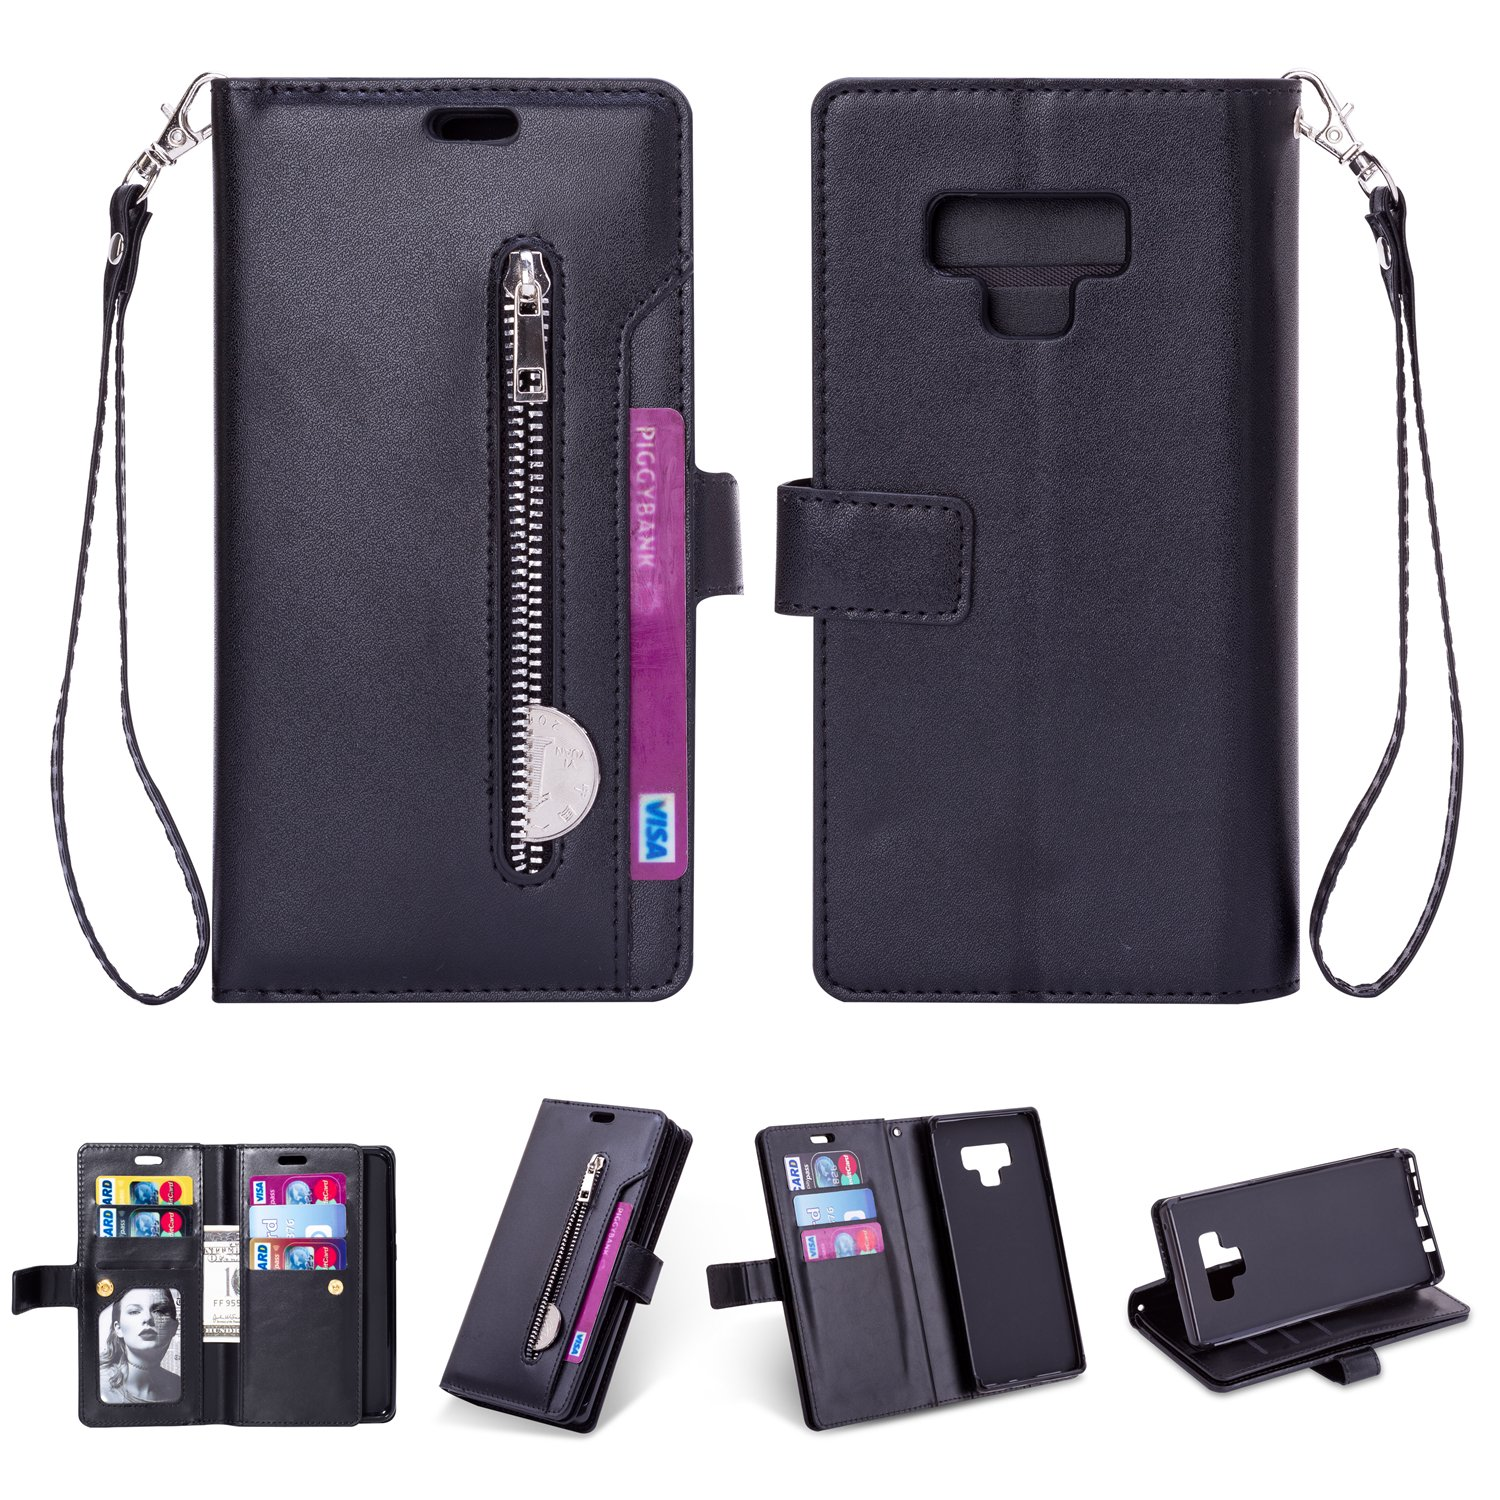 Sammid Galaxy Note 9 Wallet Case, Hand Strap PU Leather Protective Case Cover with Card Slots and Stand Function for Galaxy Note 9 - Black